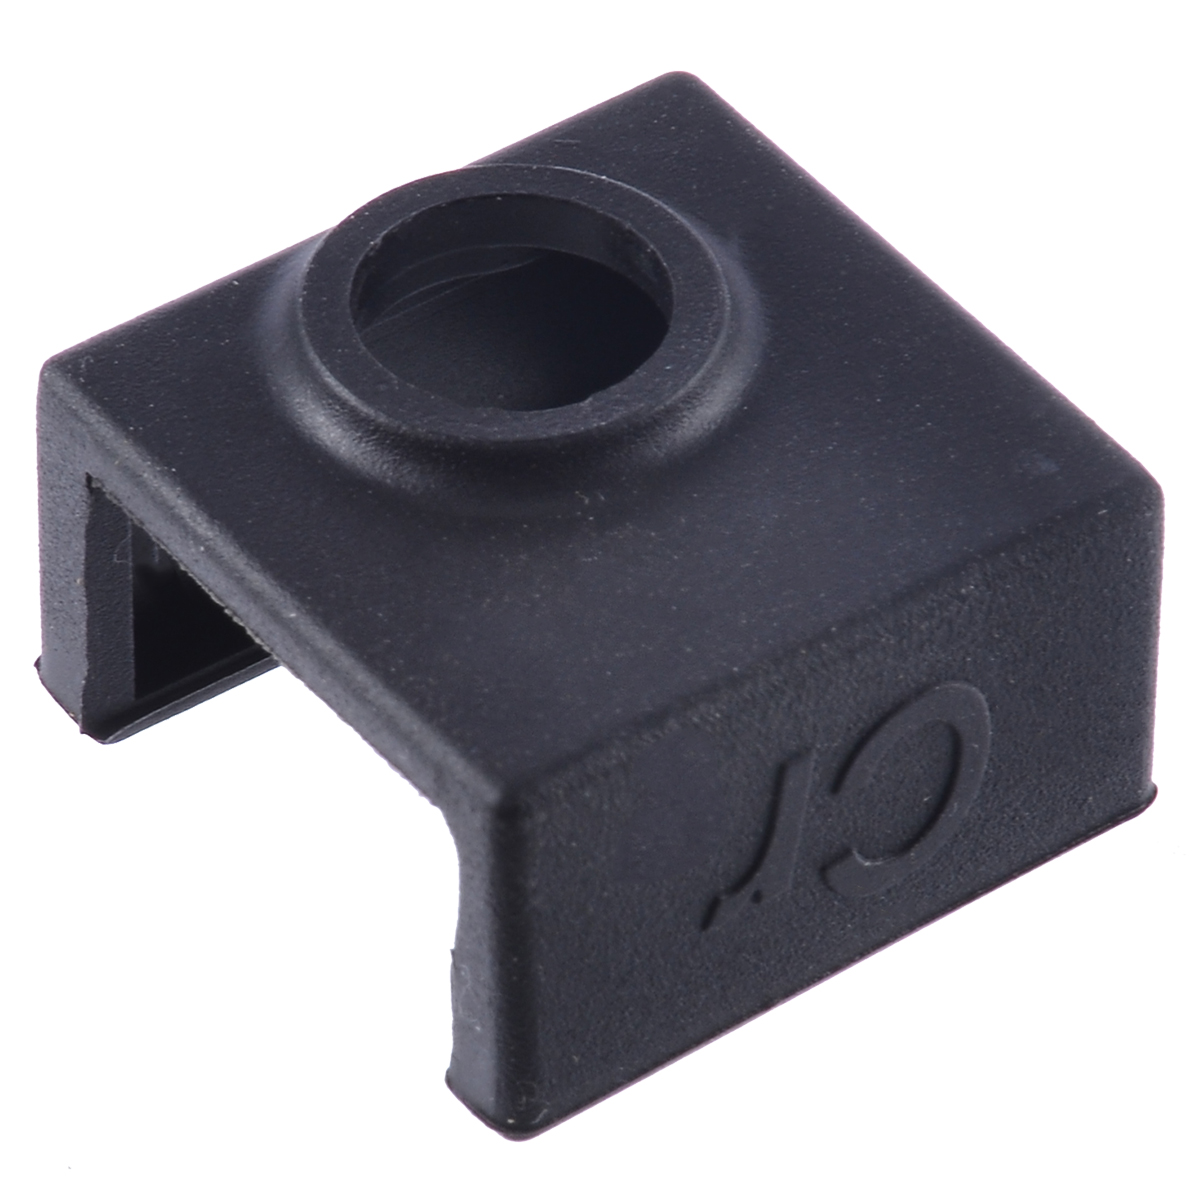 3pcs 3D Printer Parts Heater Block MK7 MK8 MK9 Hot End Protective Silicone Sock Cover Case For CR-10